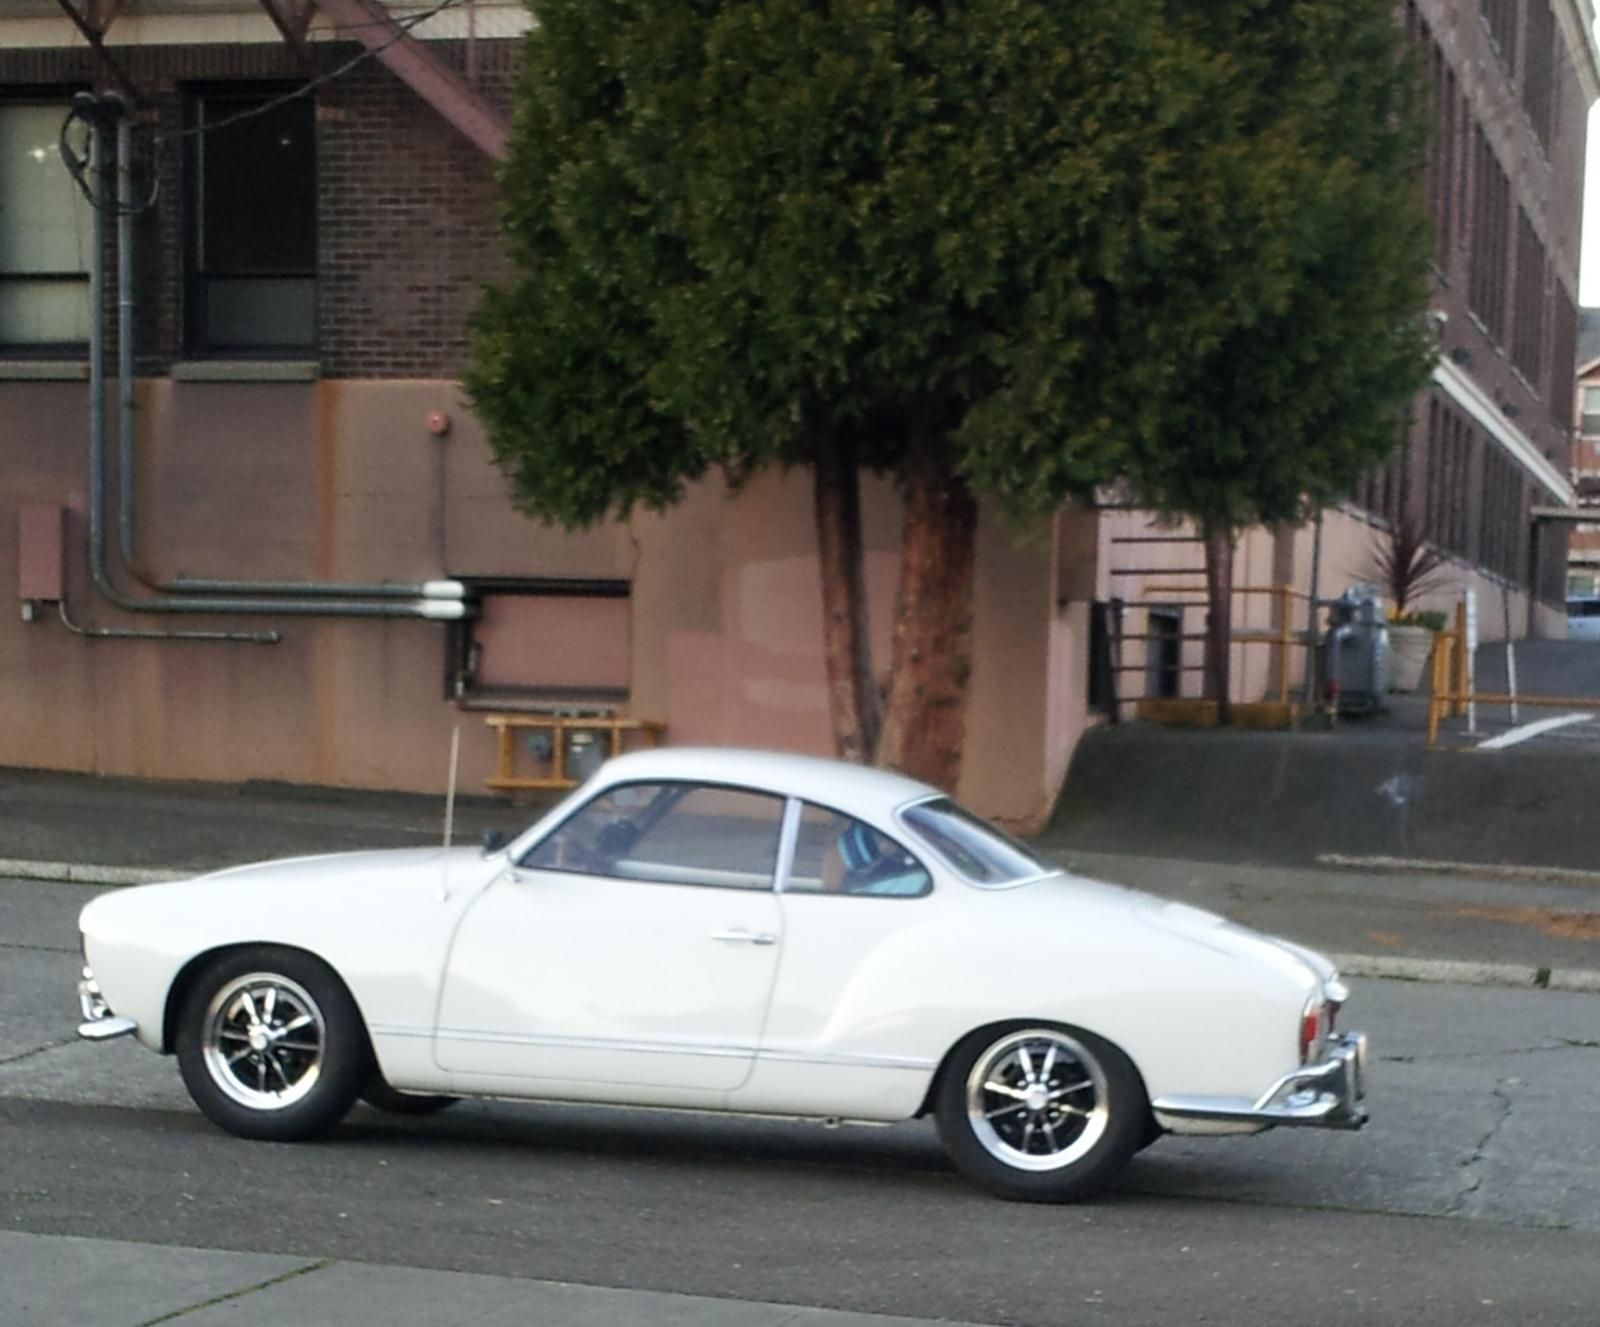 Will These Empi Sprint Stars Fit Vdubs Pinterest Cool Cars Electric Karmann Ghia In Los Angeles Vw Forum Car Stuff